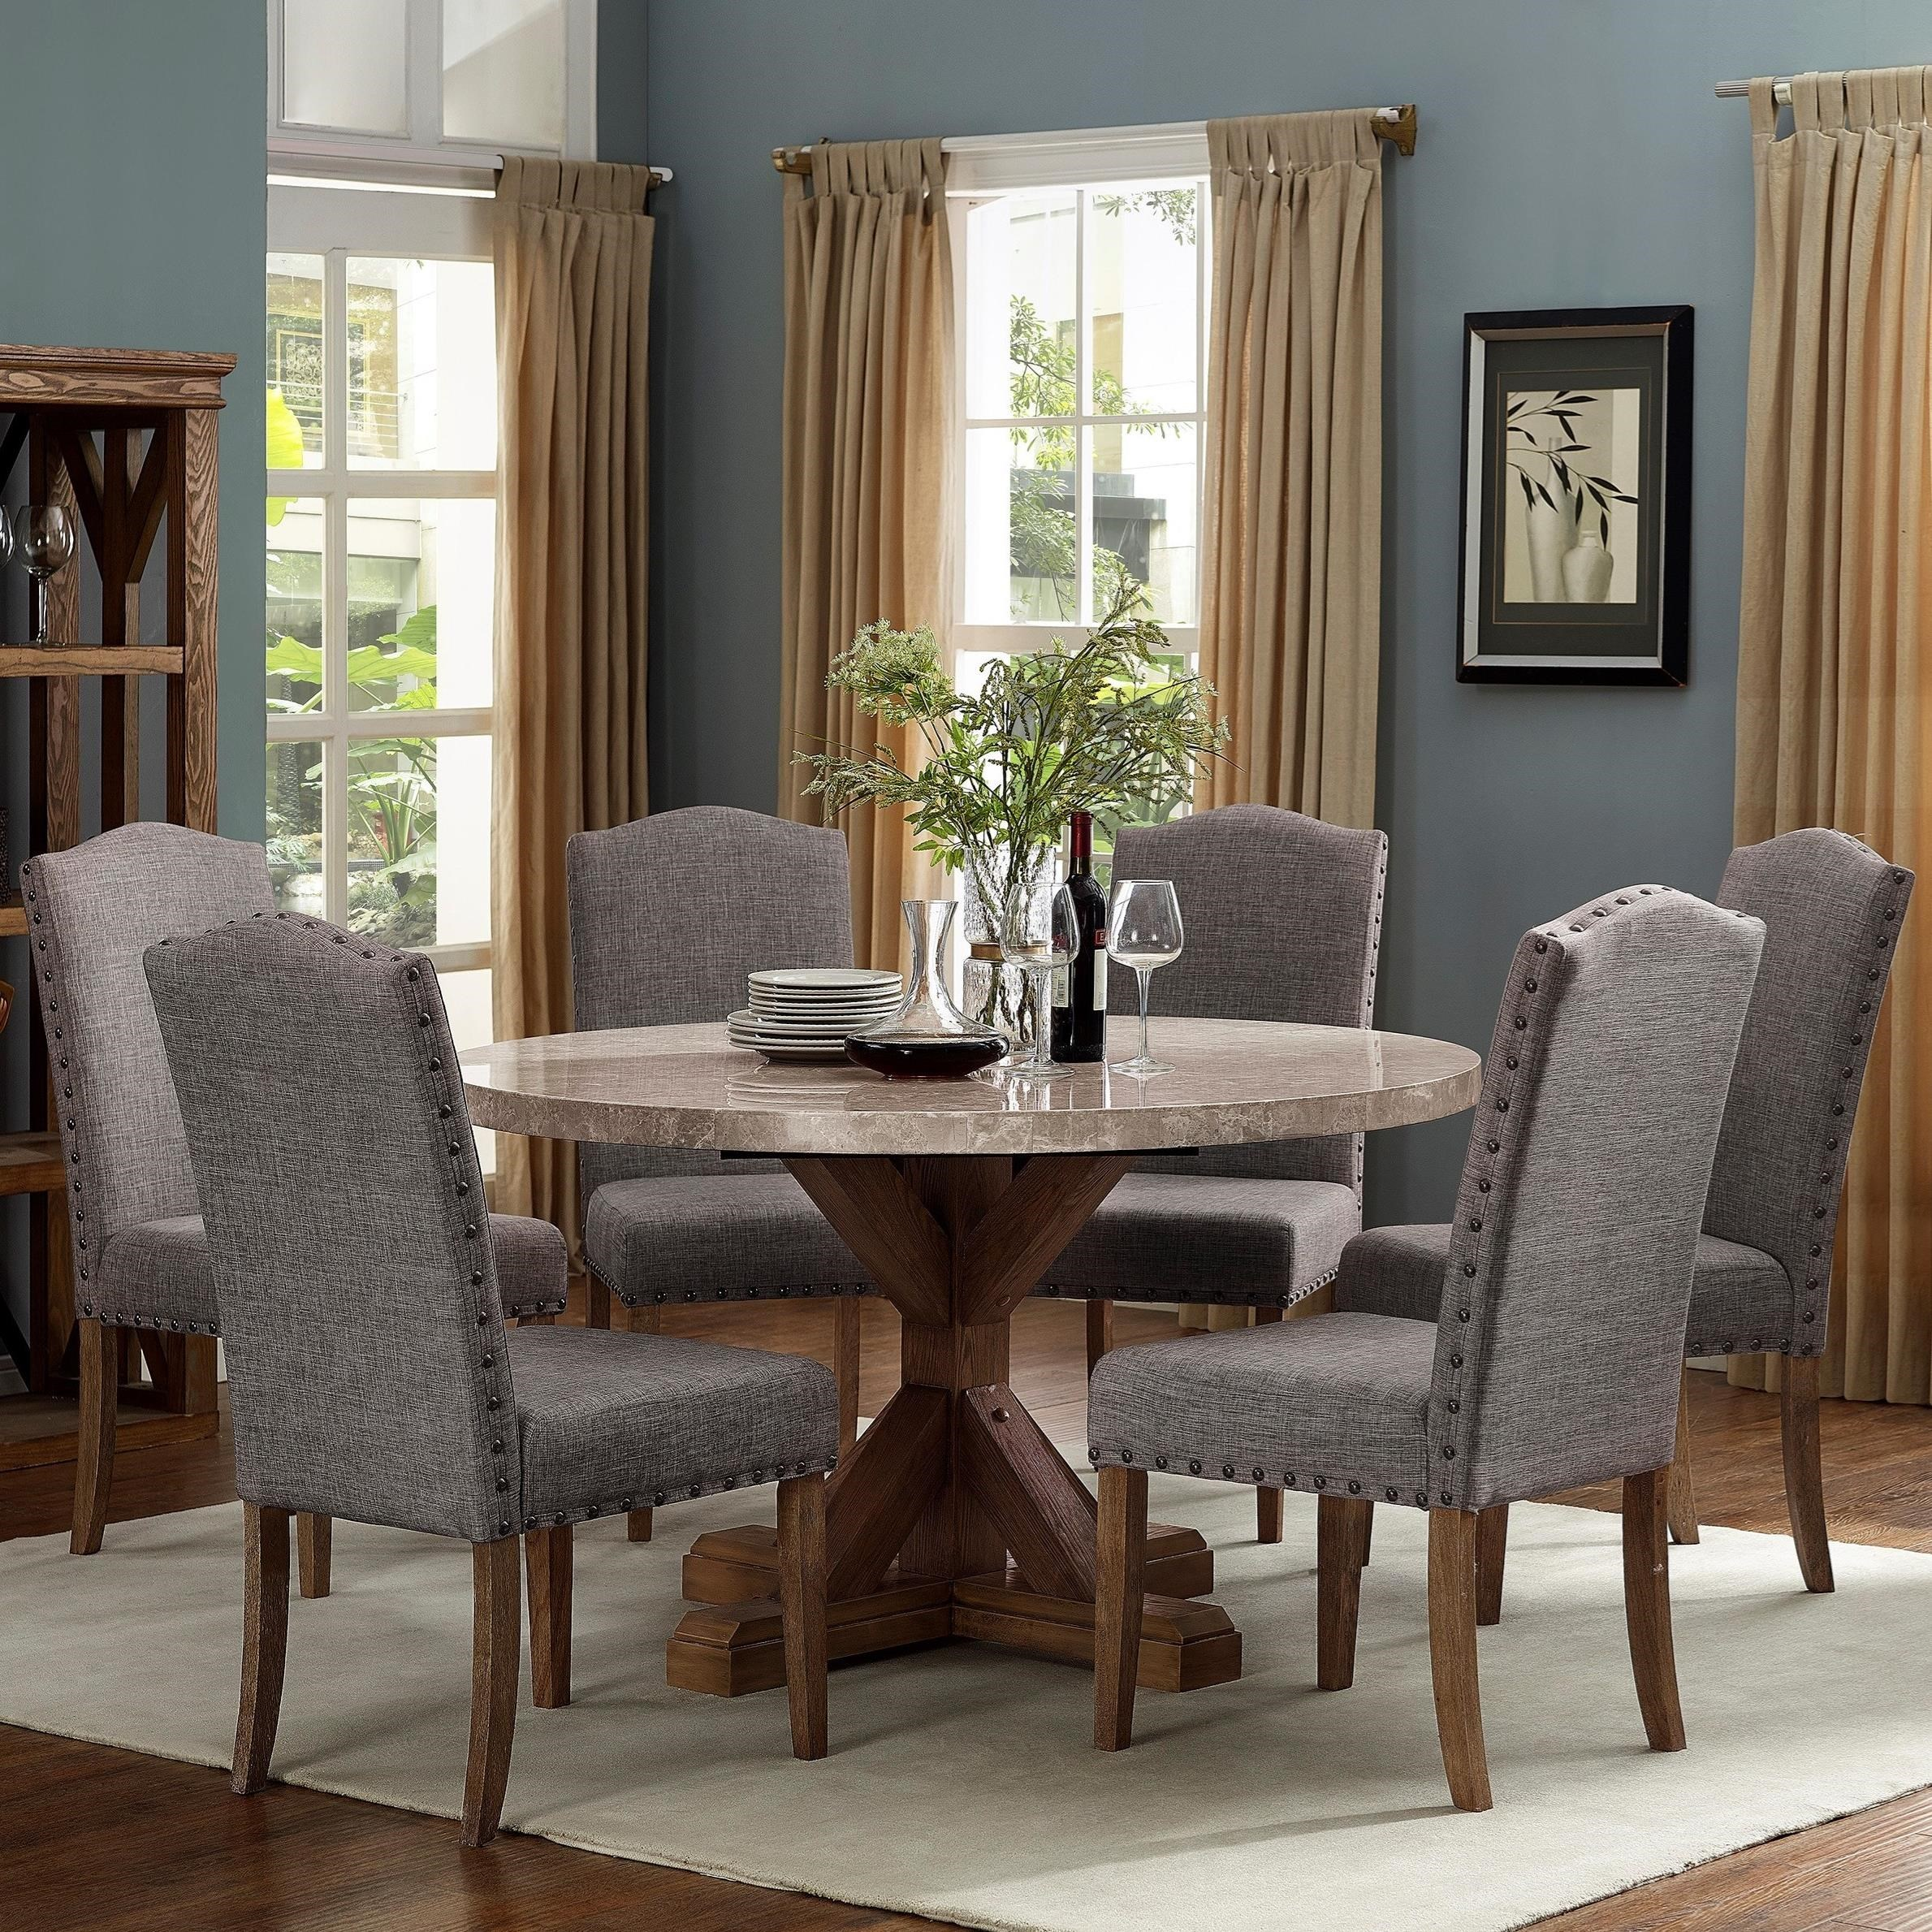 Crown Mark Vesper Dining Dining Set With Round Table Royal Furniture Dining 7 Or More Piece Sets